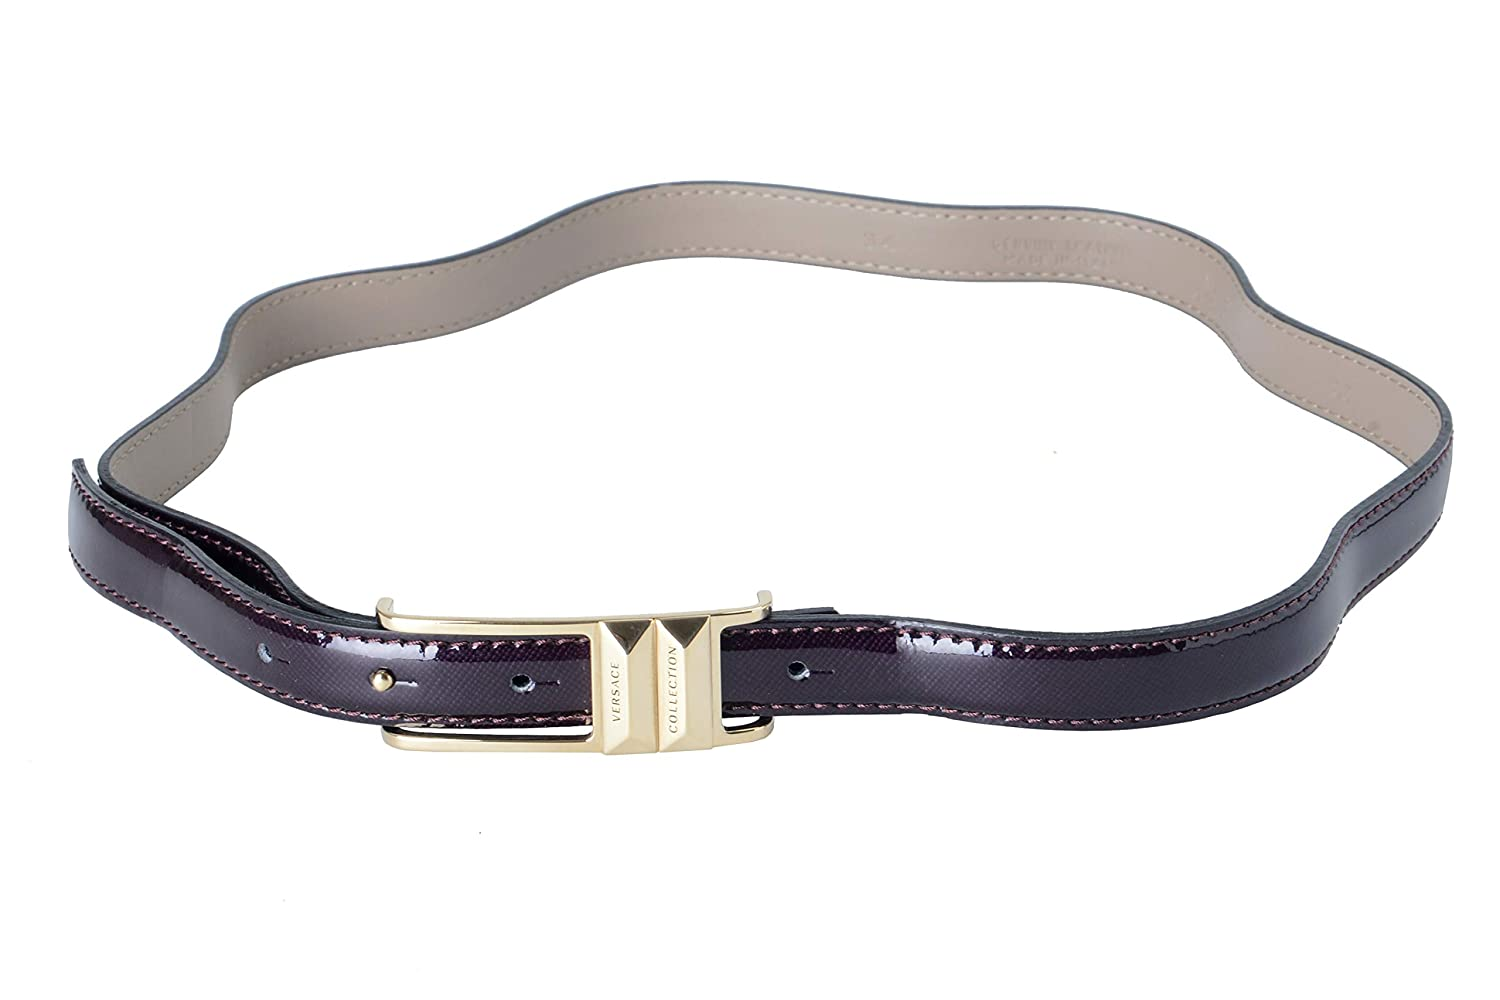 Versace Collection 100% Leather Purple Women's Belt US 85 IT 100